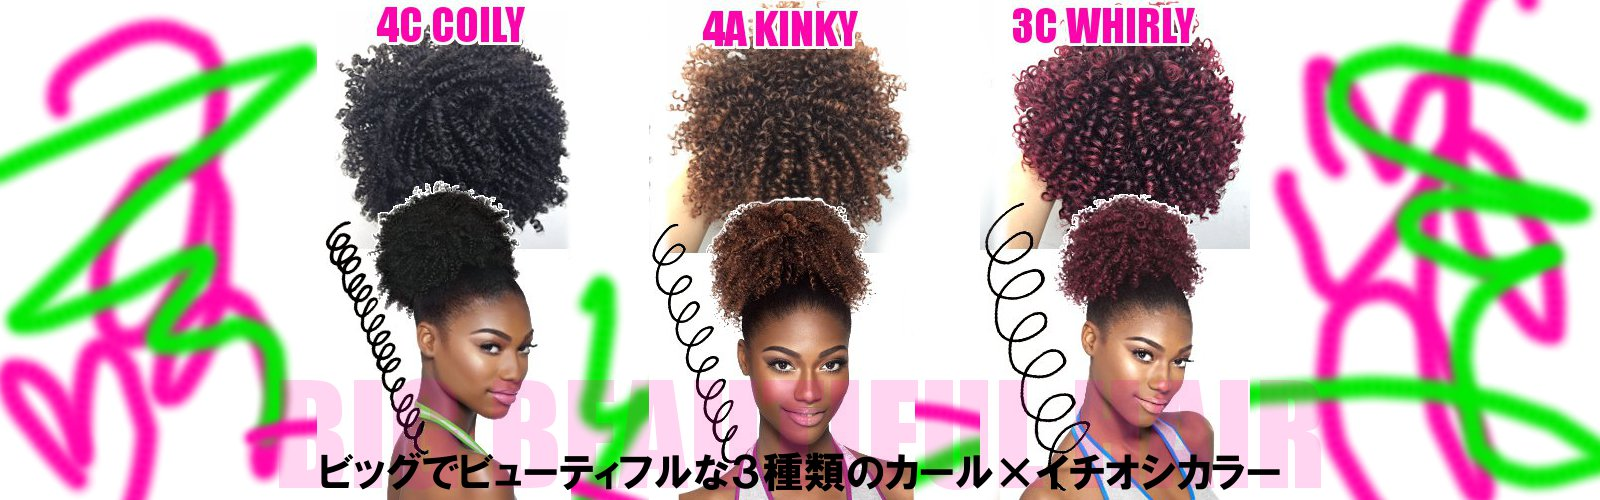 Outre Timeless Big Beautiful Hair 4C Coily 4A Kinky 3C Whirly